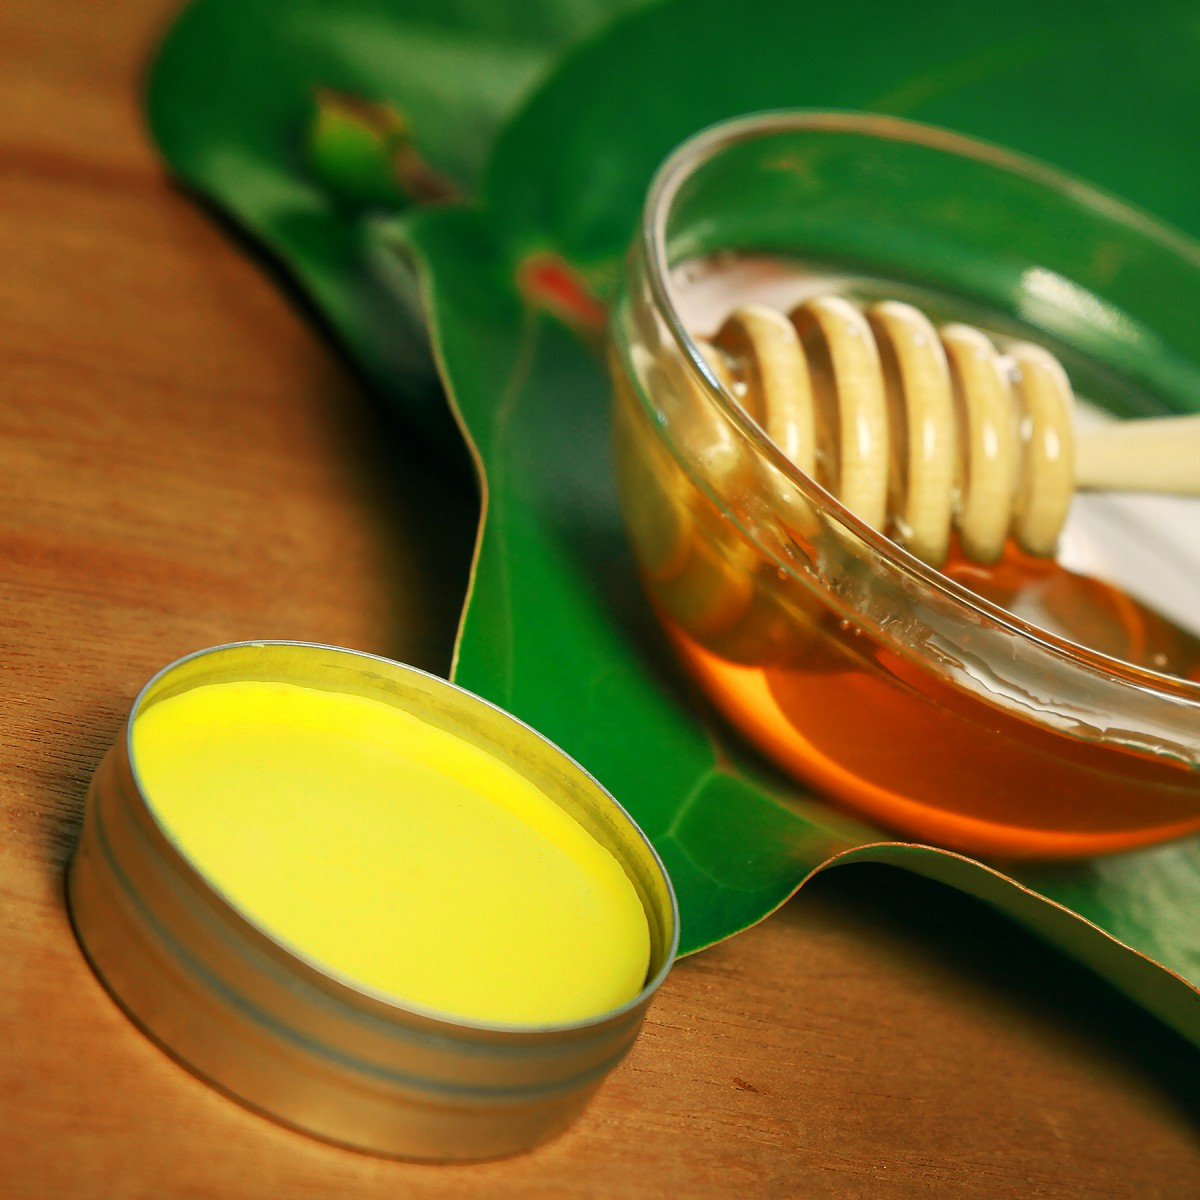 Beeswax for Your Skin